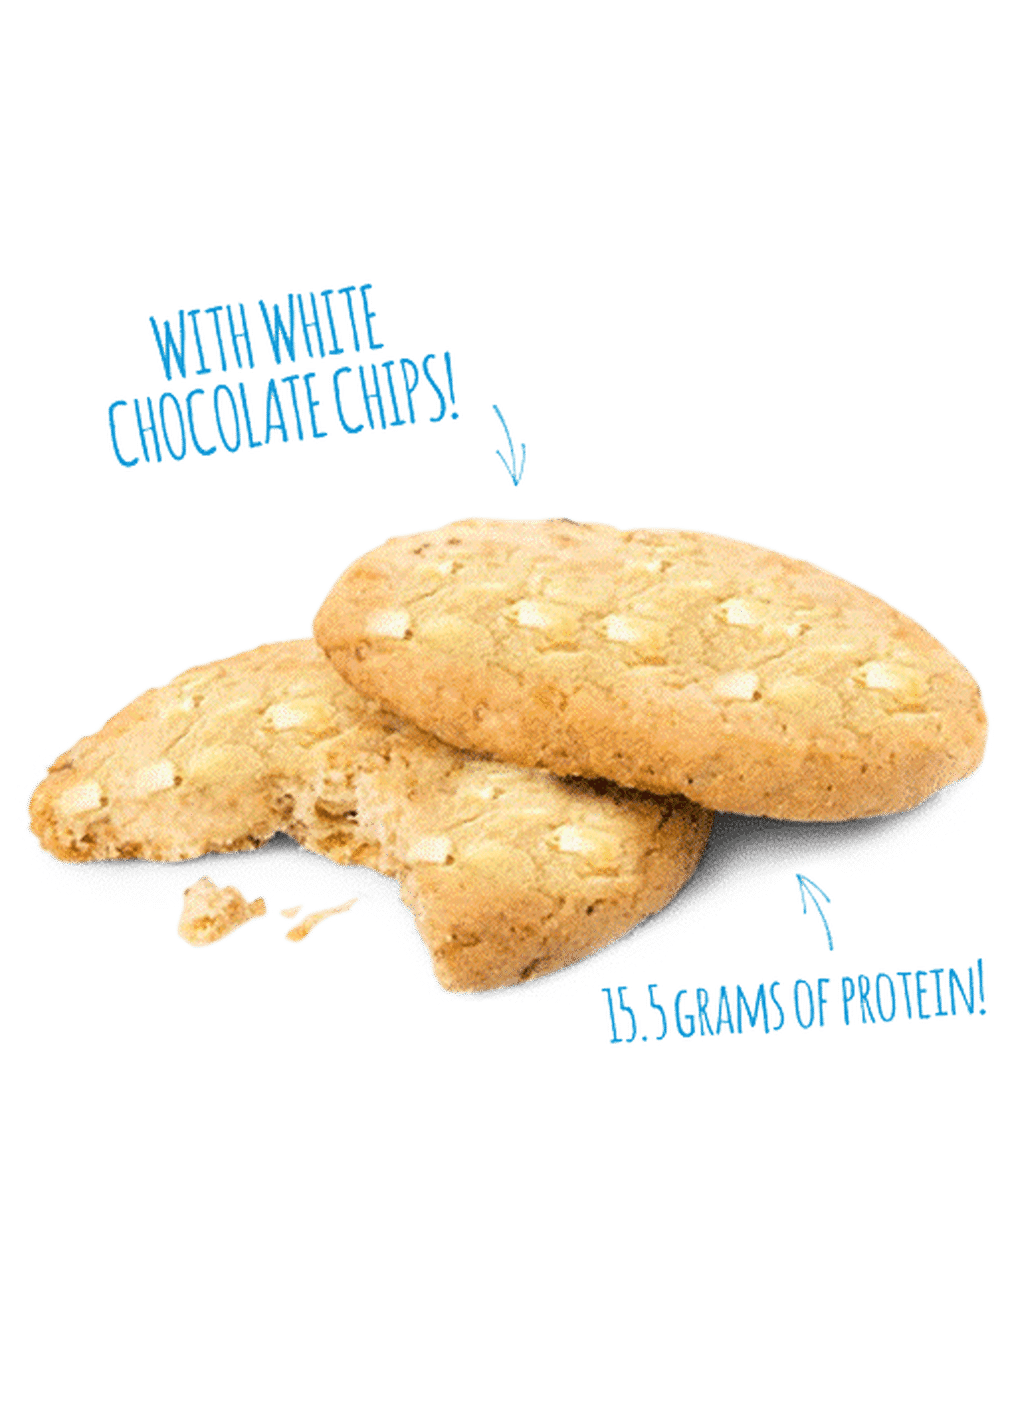 protein-cookies_Image_02